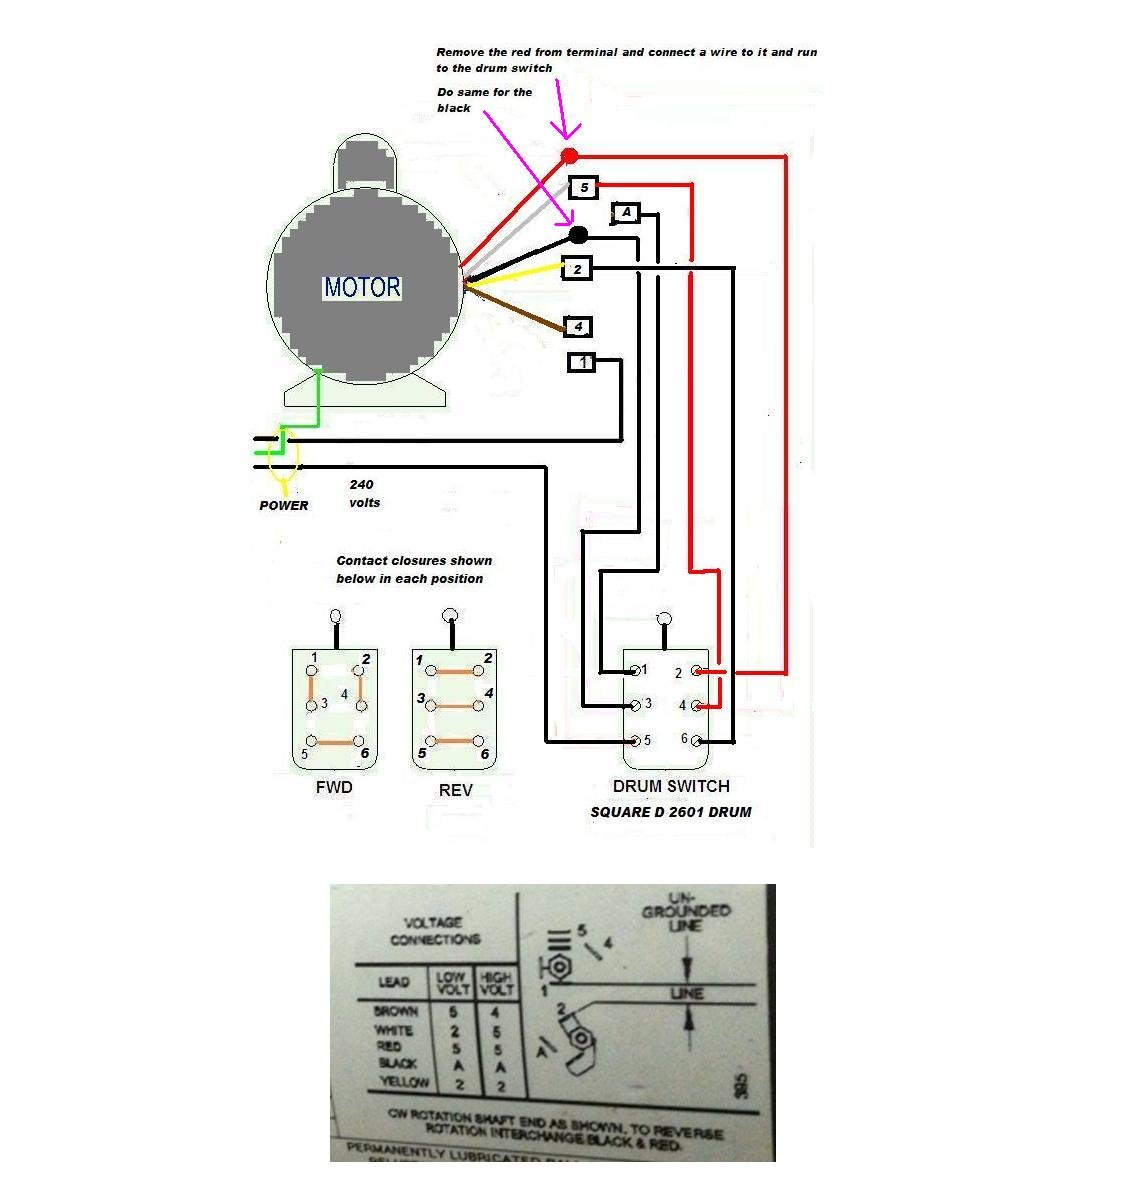 DIAGRAM] Square D Drum Switch Wiring Diagram FULL Version HD Quality Wiring  Diagram - CIRCUTDIAGRAM.ABANOHOTELVERONA.ITcircutdiagram.abanohotelverona.it